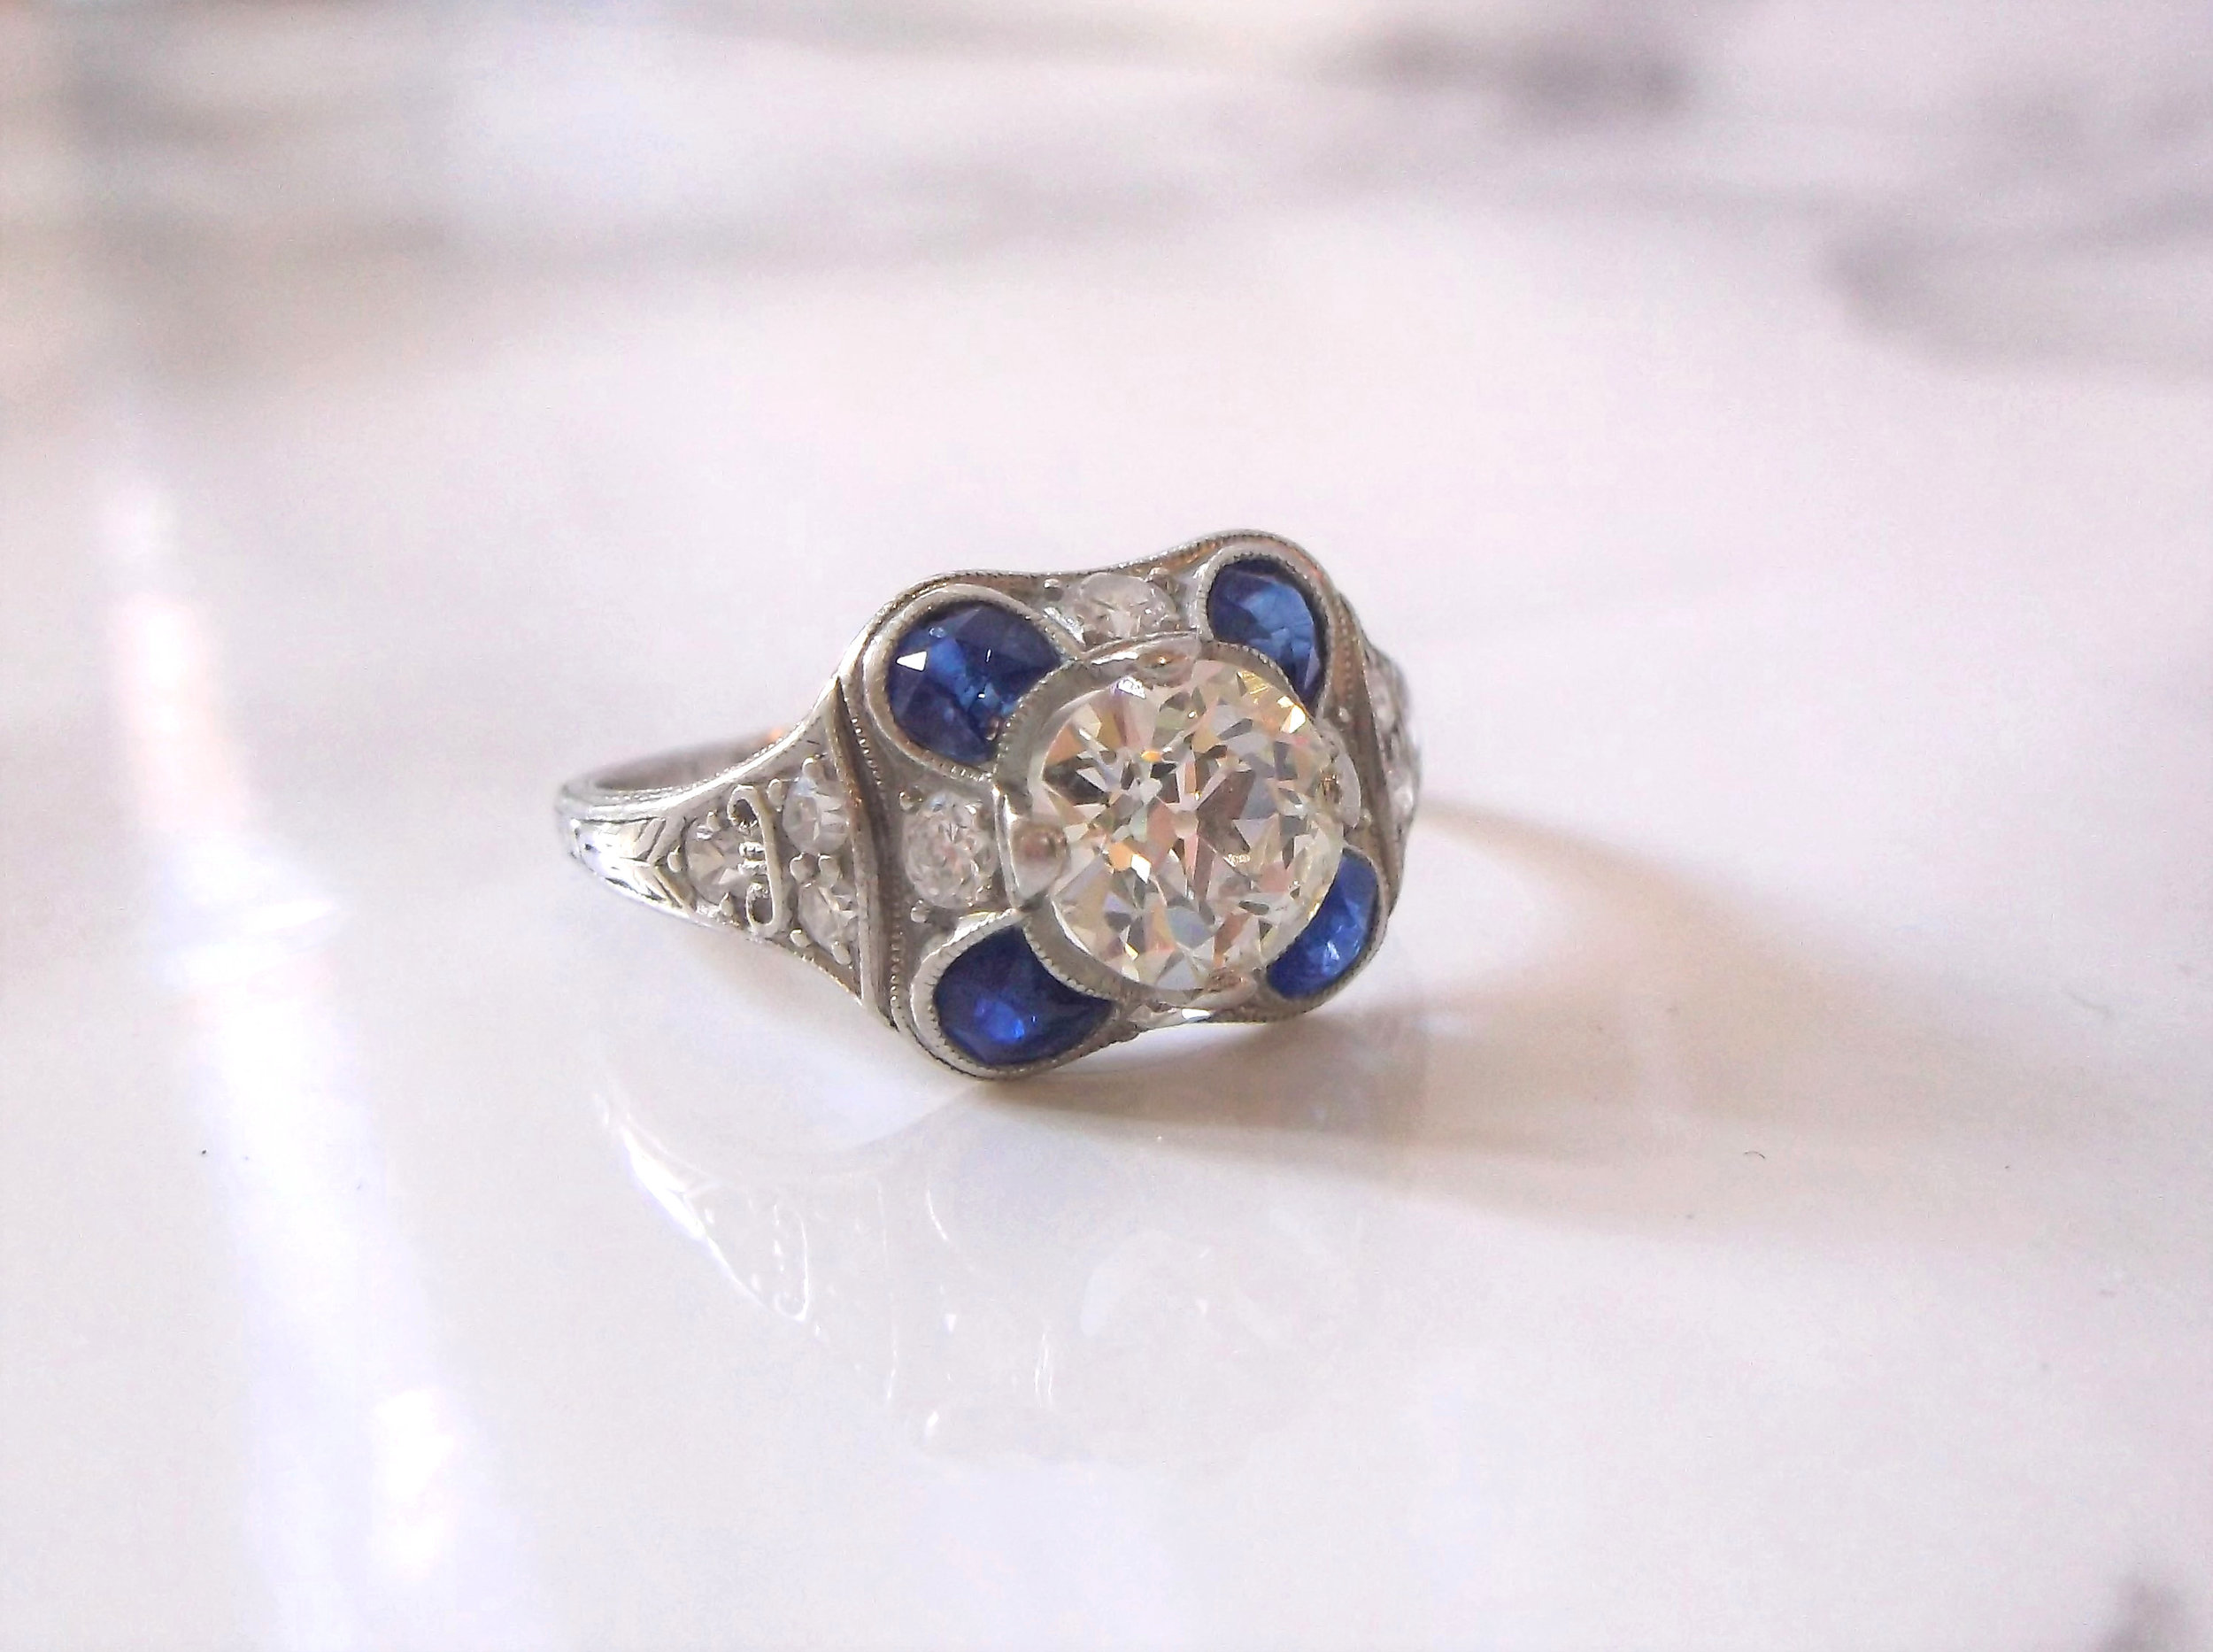 SOLD - What's not to love about this fabulous 1920's Old European cut diamond and sapphire ring?! The ring features a center 1.15 carat Old European cut diamond, surrounded by 0.50 carats in sapphires and 0.25 carats in accent diamonds, all set in platinum.  Shop this ring  HERE